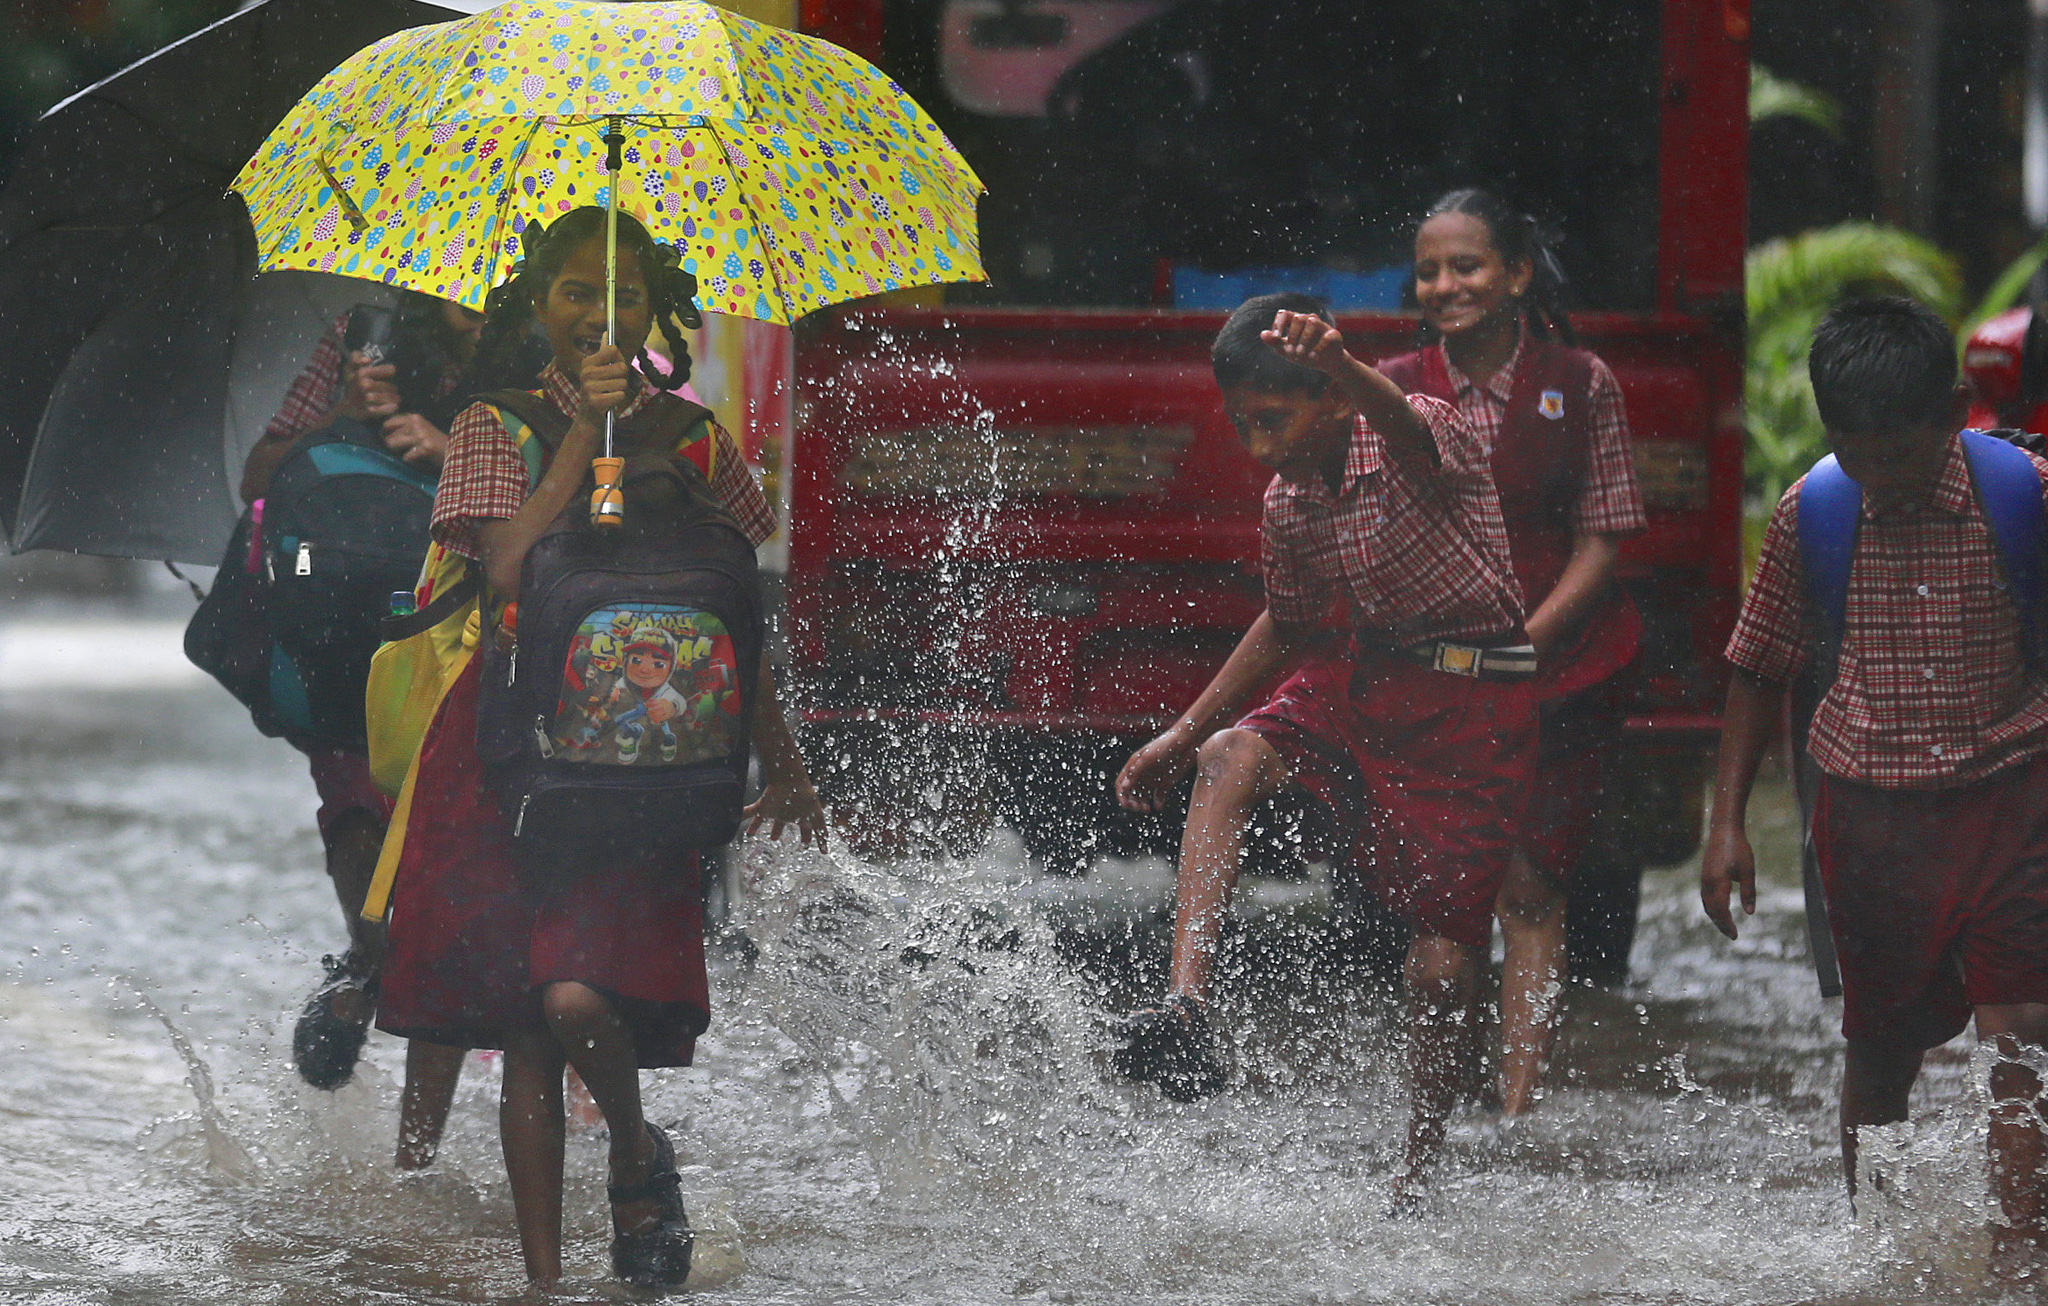 A schoolgirl reacts to rainwater being splashed on her, in a flooded street in Mumbai, India